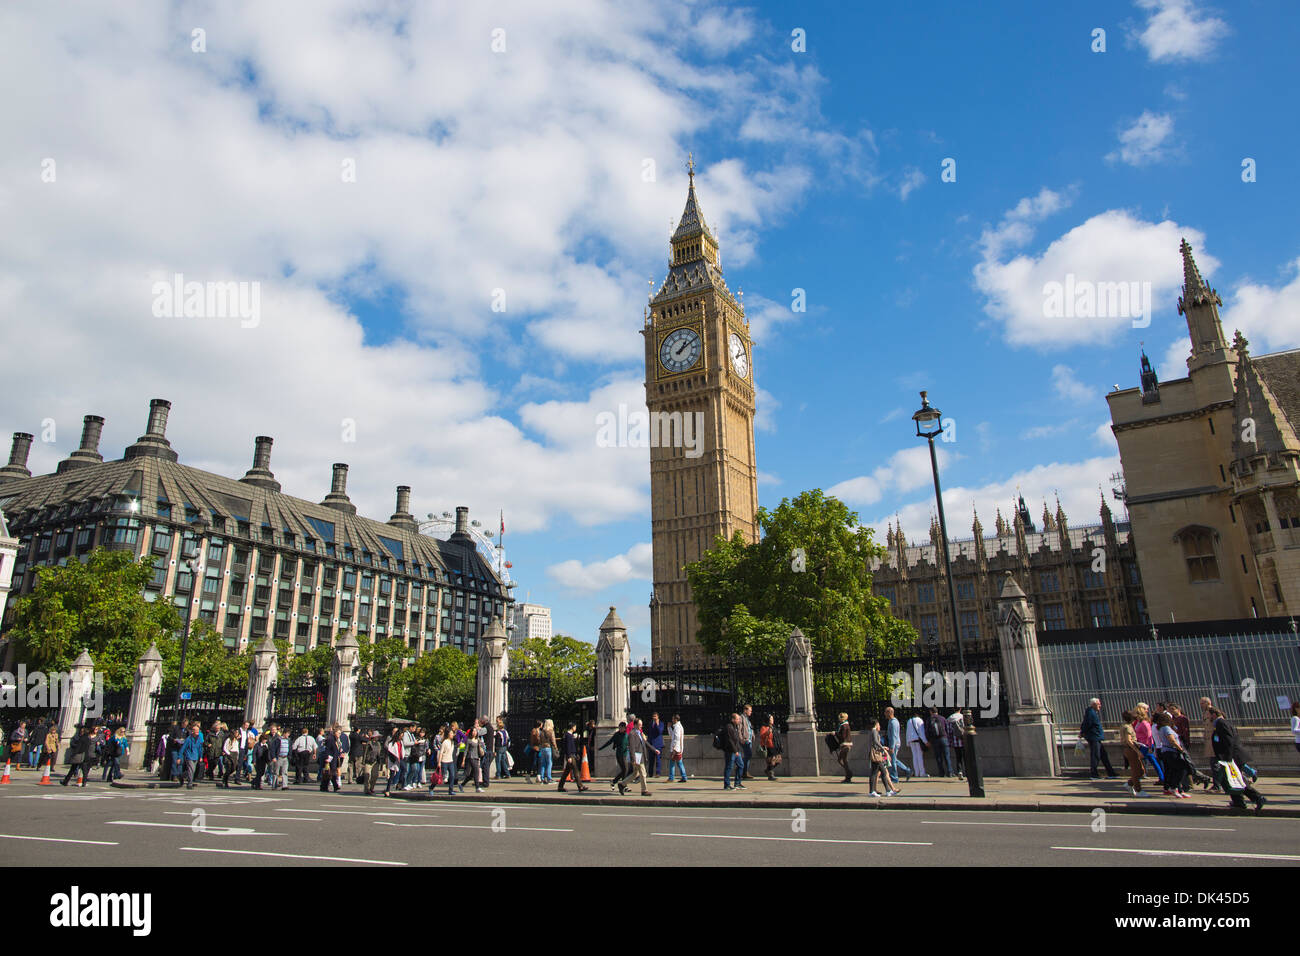 Parliament Square, Central London with Portcullis House (left) and Big Ben (middle), London, UK - Stock Image